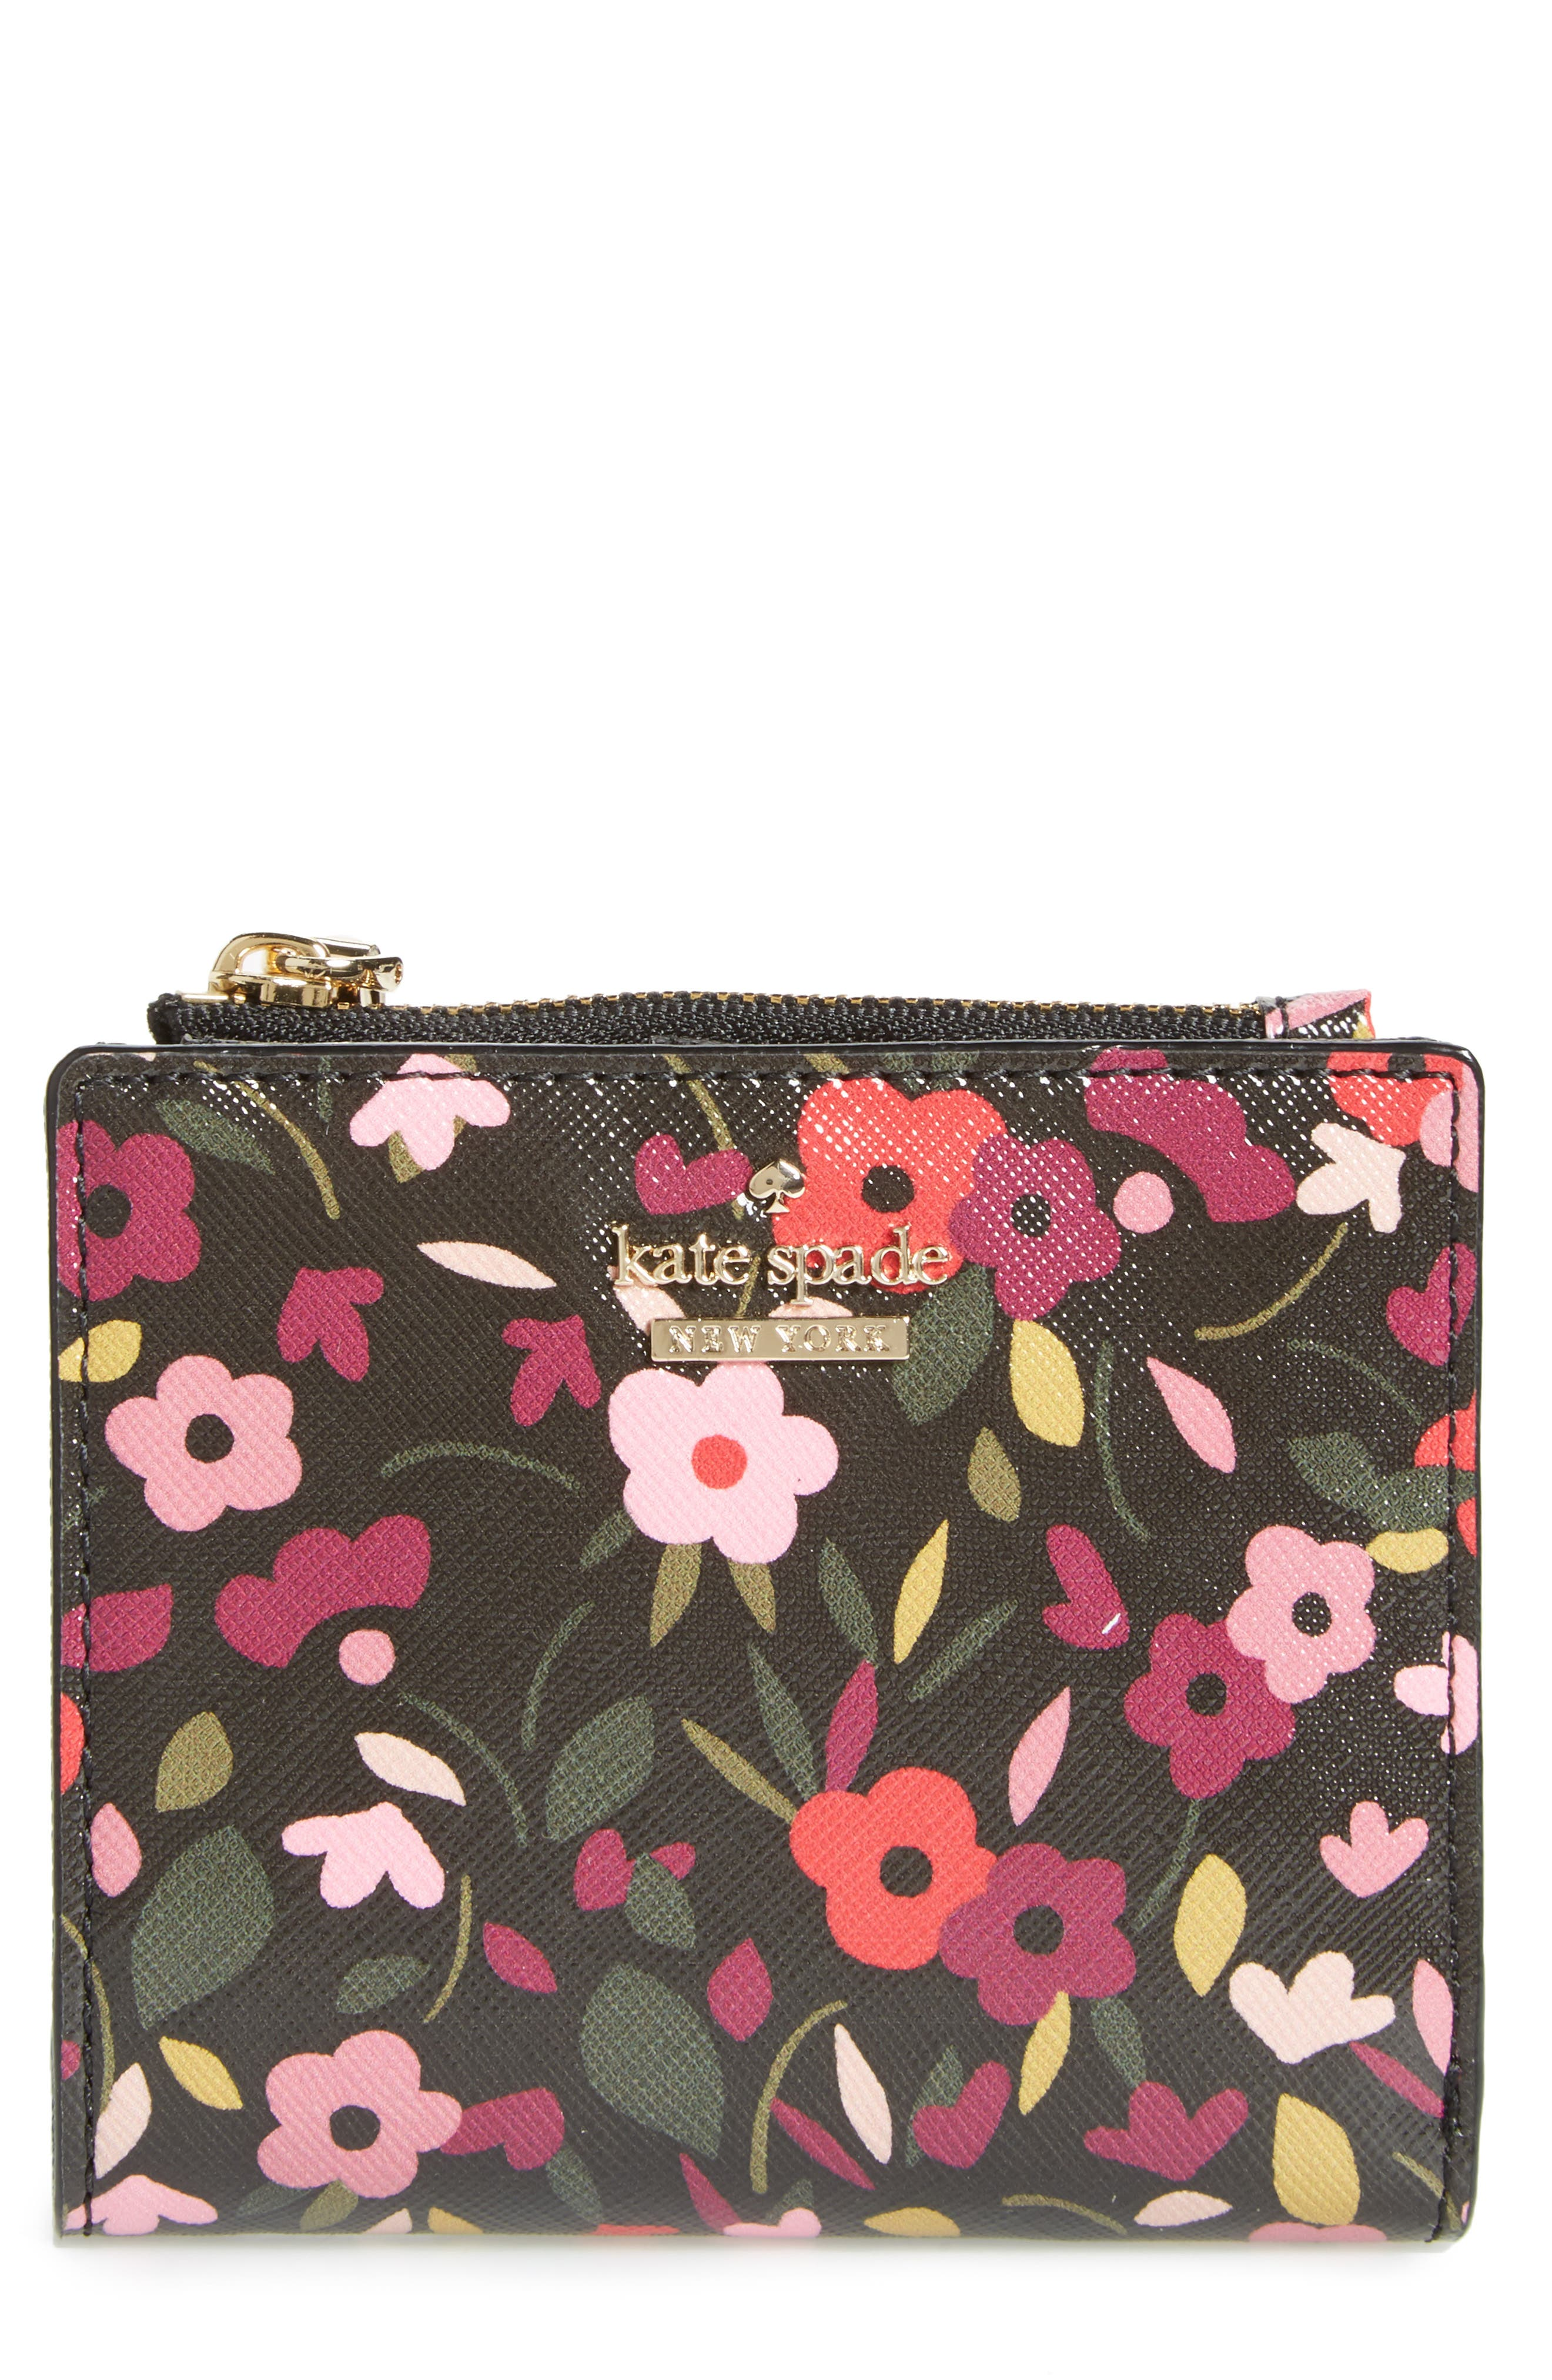 cameron street - adalyn boho floral wallet,                             Main thumbnail 1, color,                             001